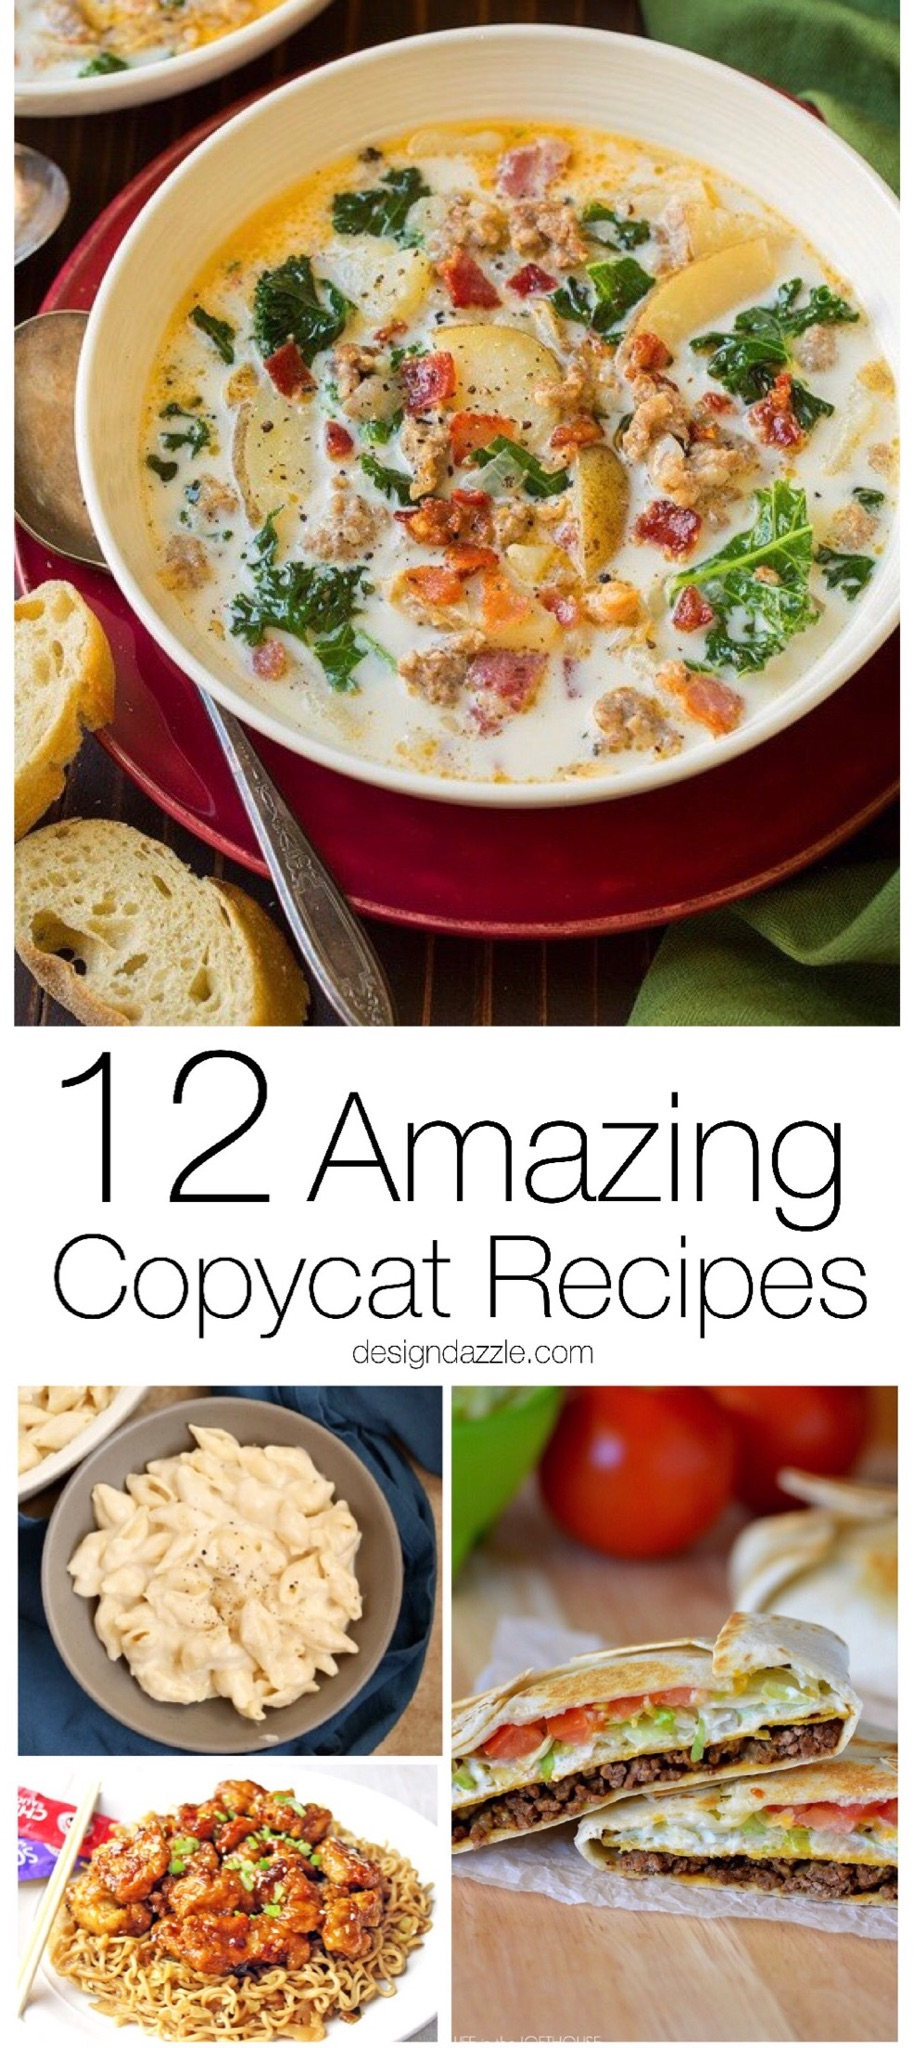 Thanks to these 12 delicious copycat recipes, you can recreate some of your favorite restaurant dishes right in the comfort of your own home!   Design Dazzle